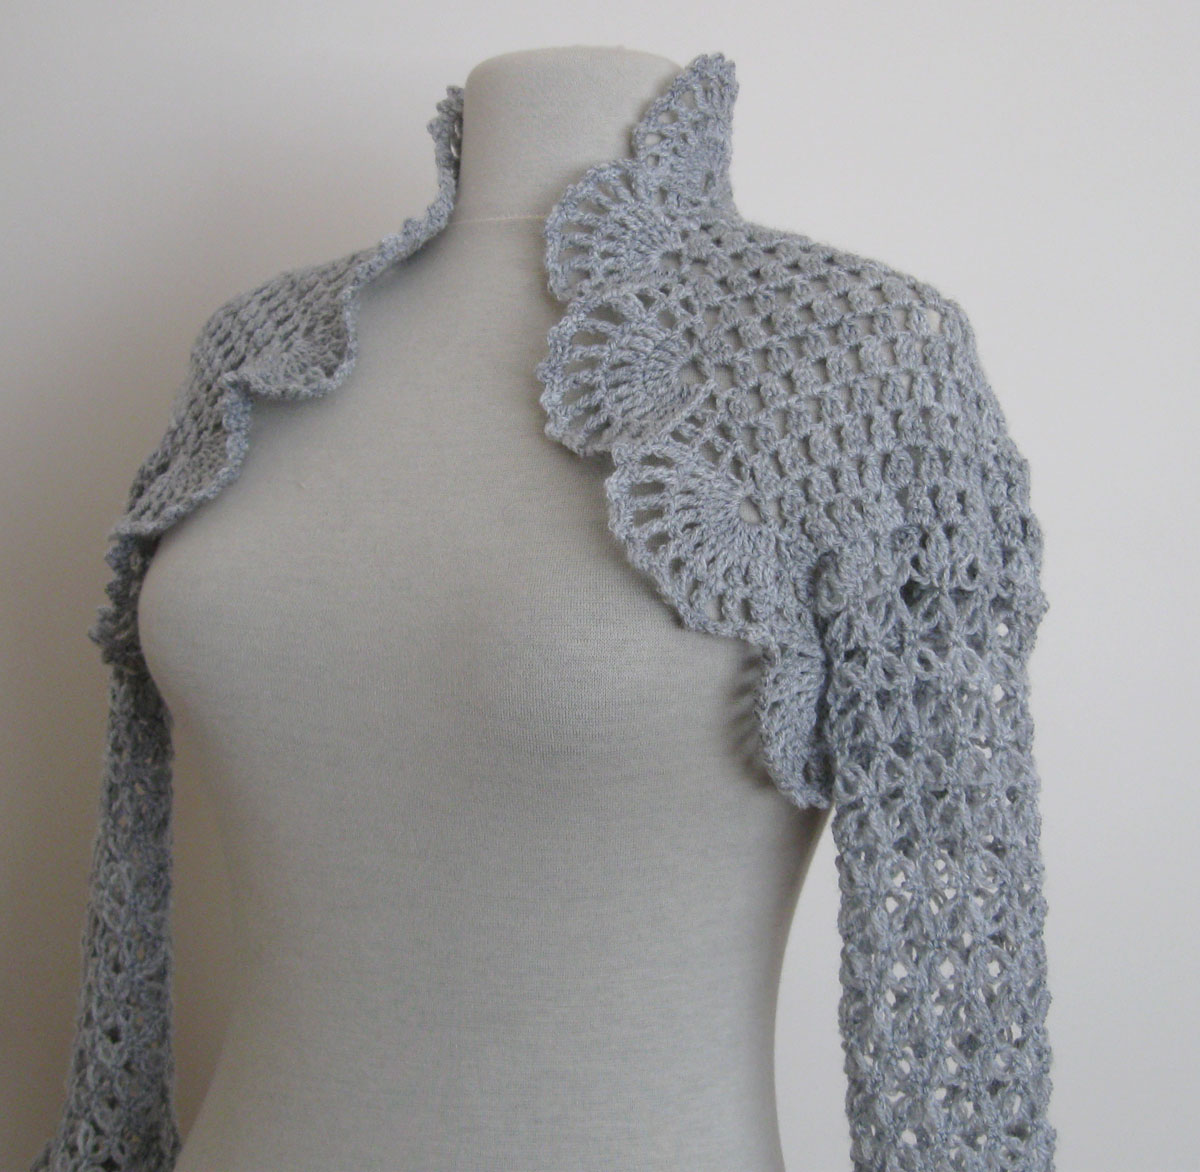 Crochet Shrug Pattern : And Beading Wedding Bridal Accessories and Free pattern: Crochet shrug ...